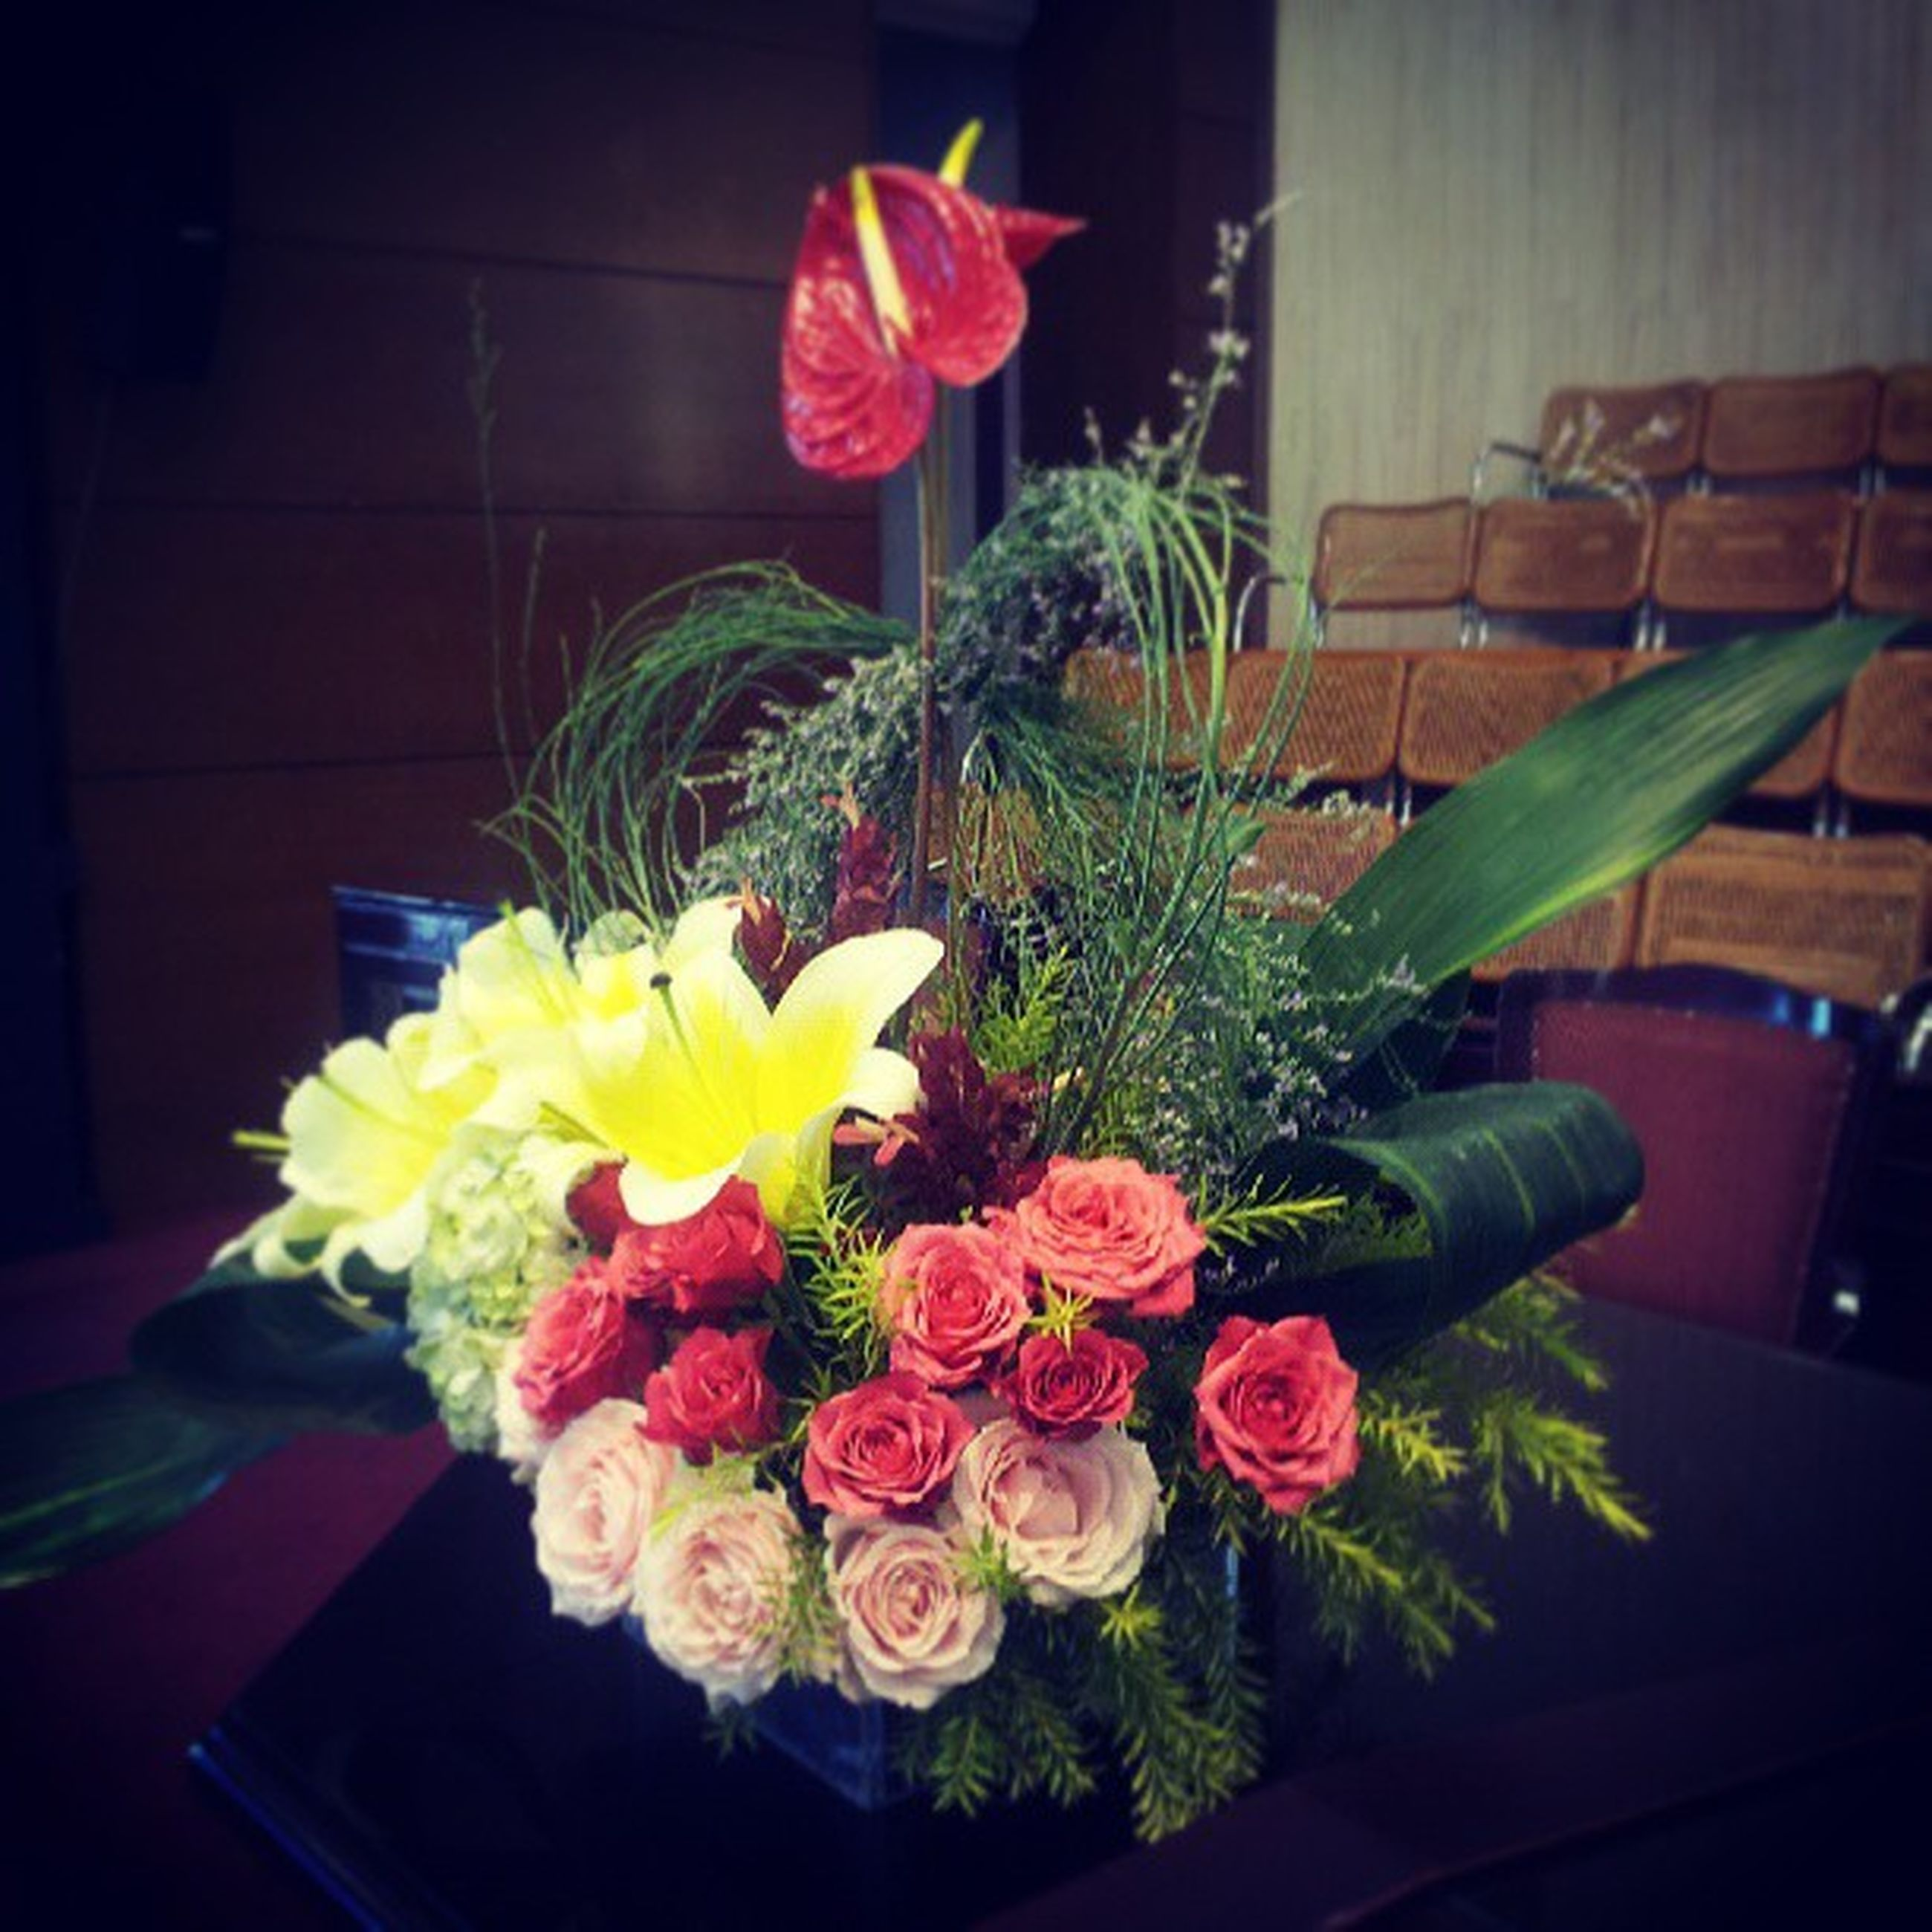 flower, indoors, freshness, petal, fragility, flower head, vase, flower arrangement, bouquet, home interior, table, decoration, potted plant, beauty in nature, plant, yellow, growth, rose - flower, bunch of flowers, close-up